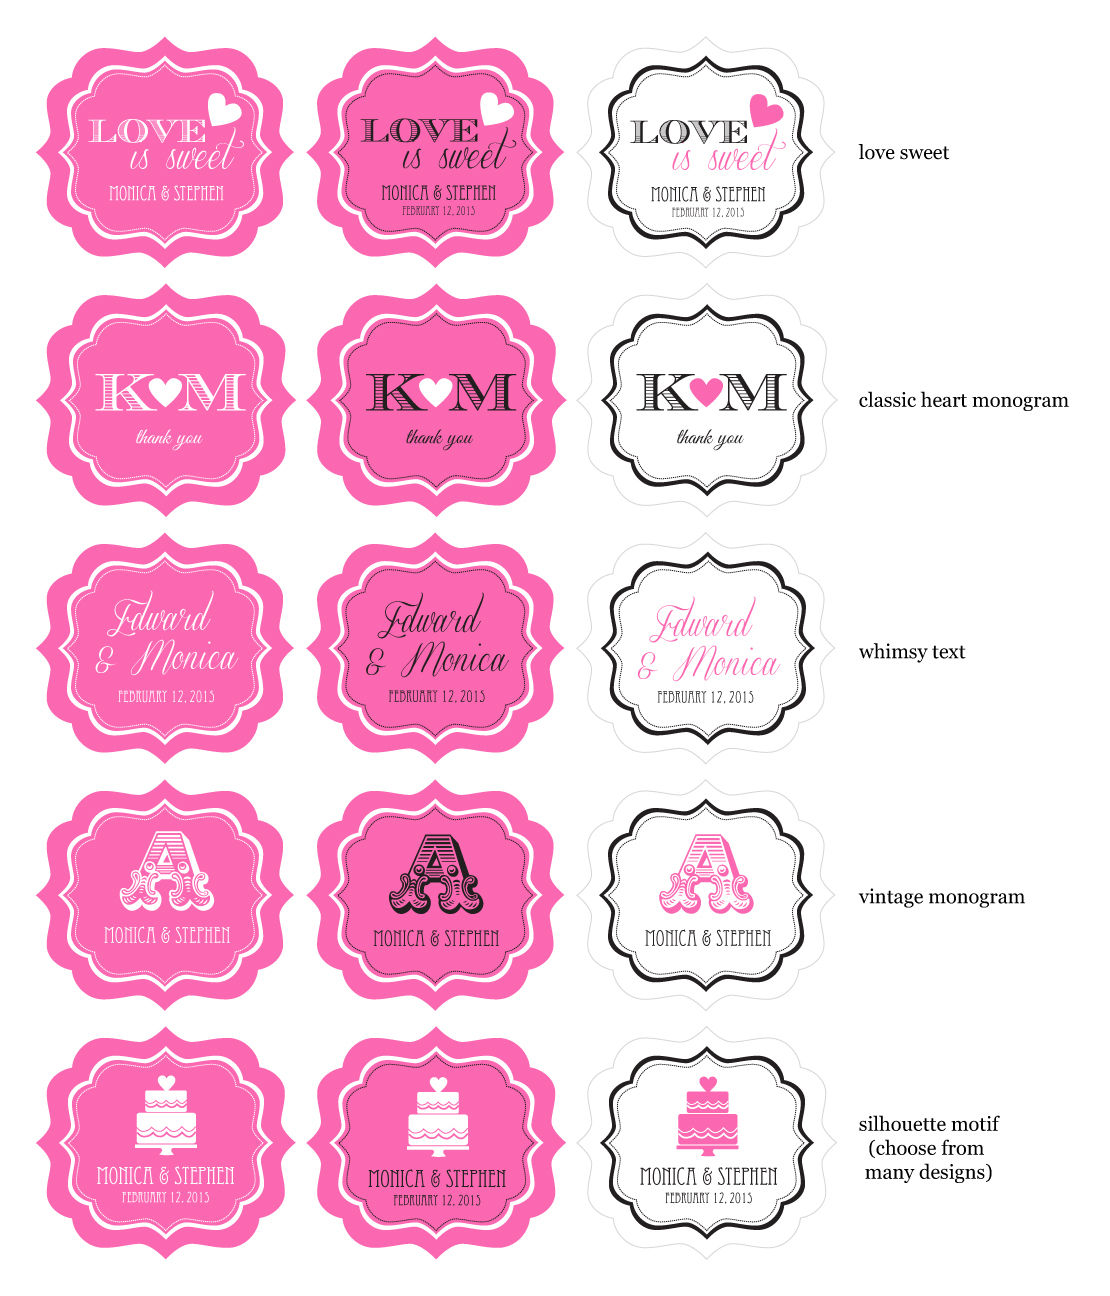 Wholesale Wedding Favors, Party Favors, by Event Blossom MOD Theme ...